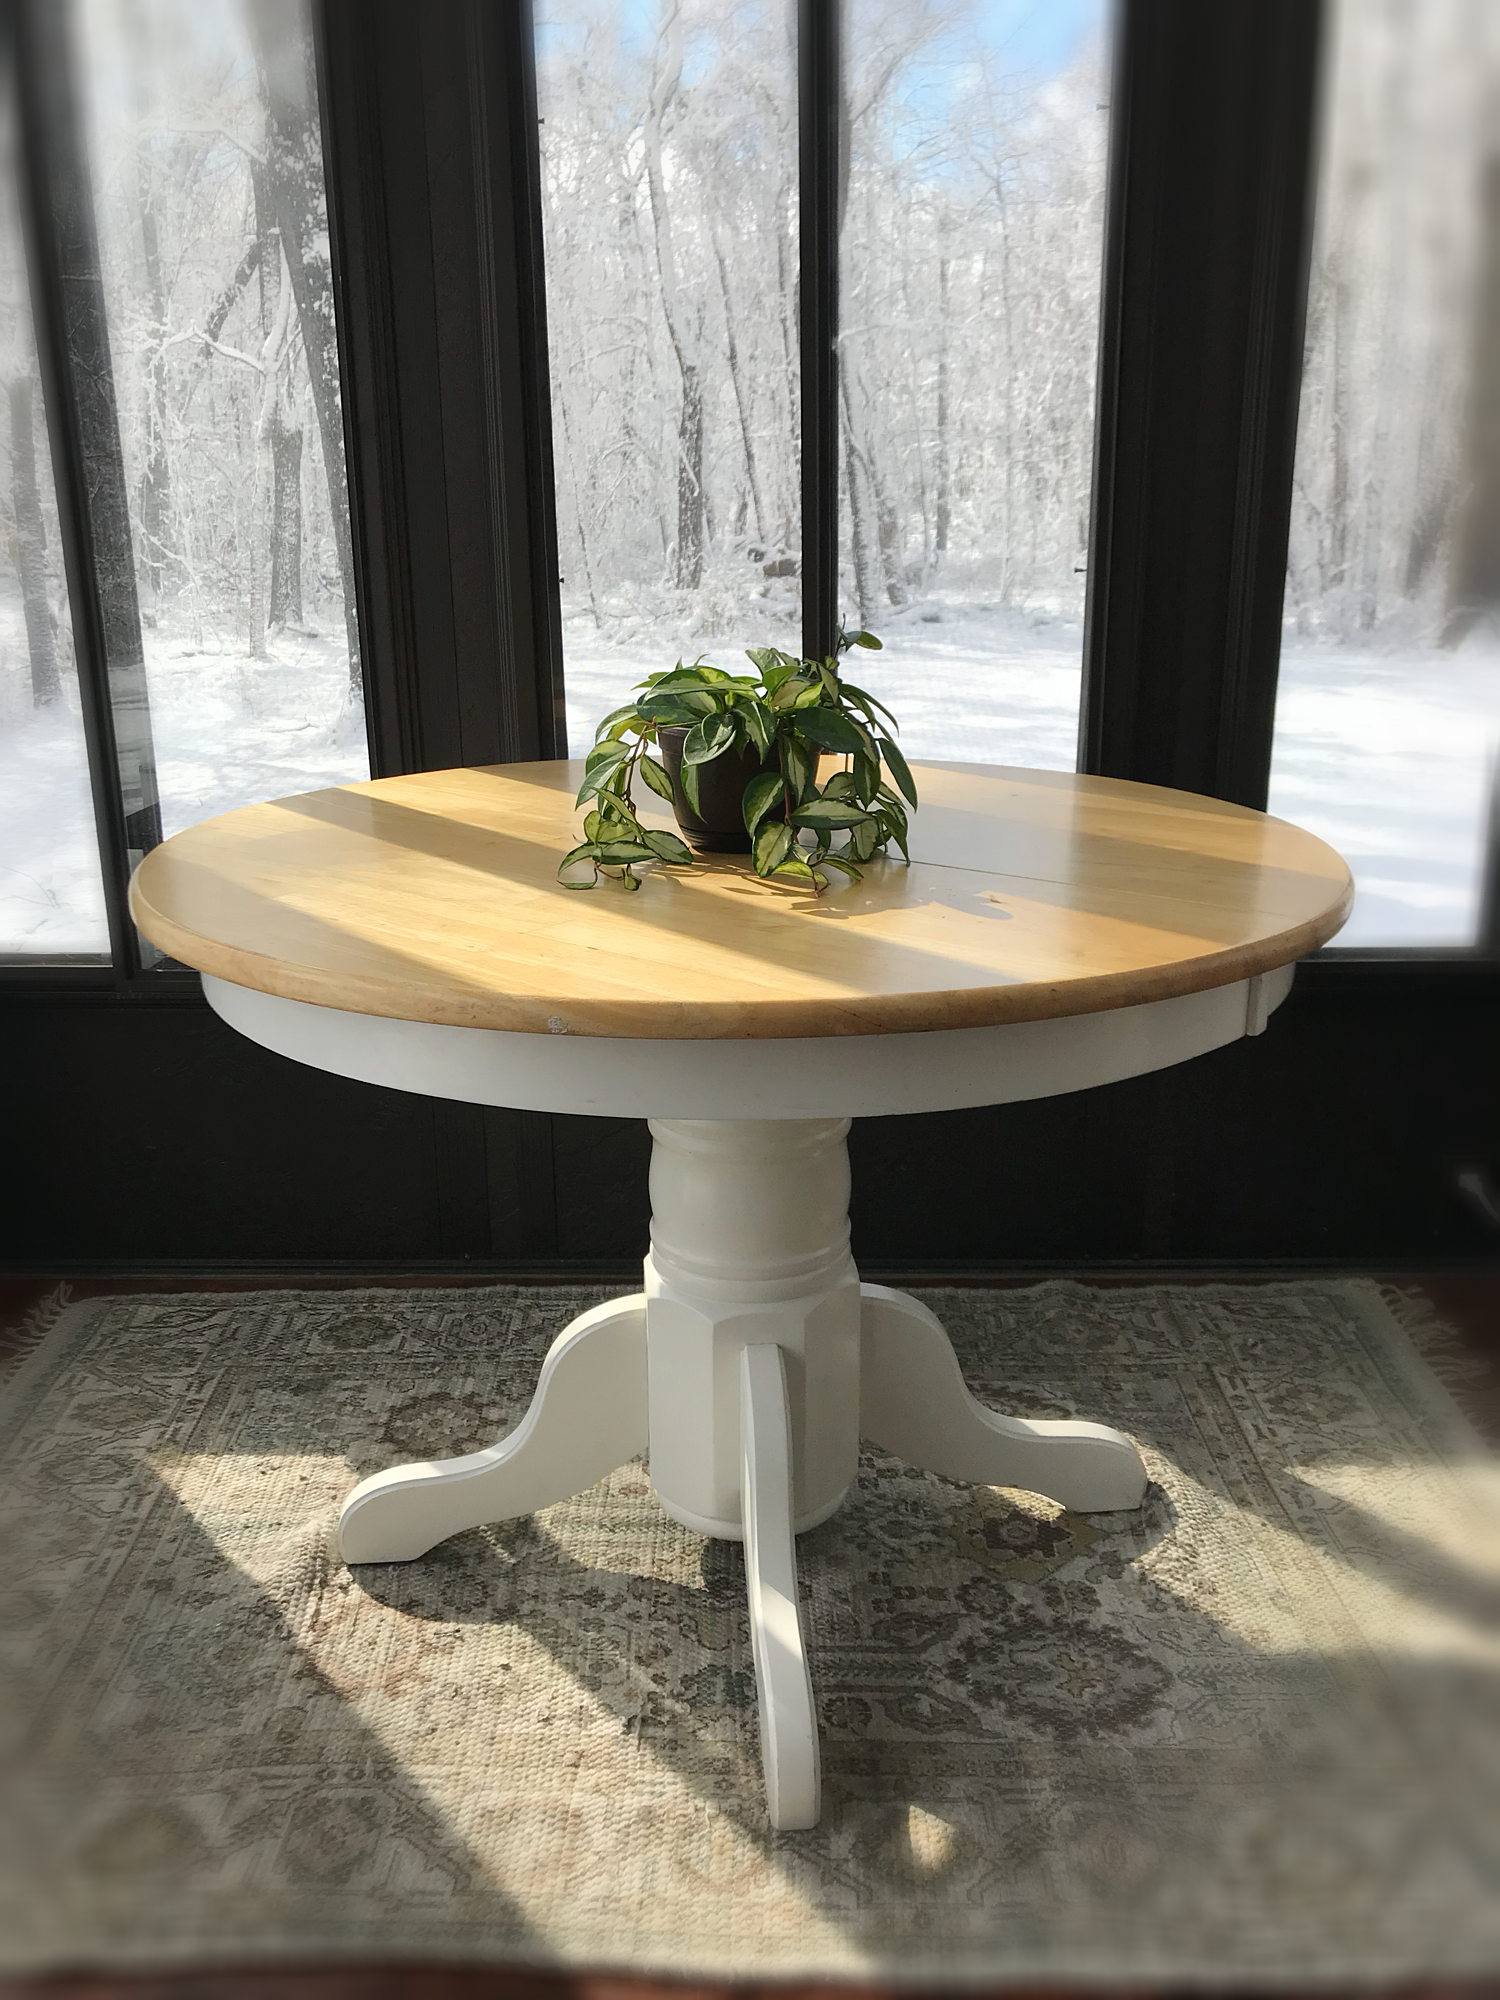 Vintage wooden accent table rustic entryway table farmhouse table vintage wooden accent table rustic entryway table farmhouse table country furnitureconsole watchthetrailerfo